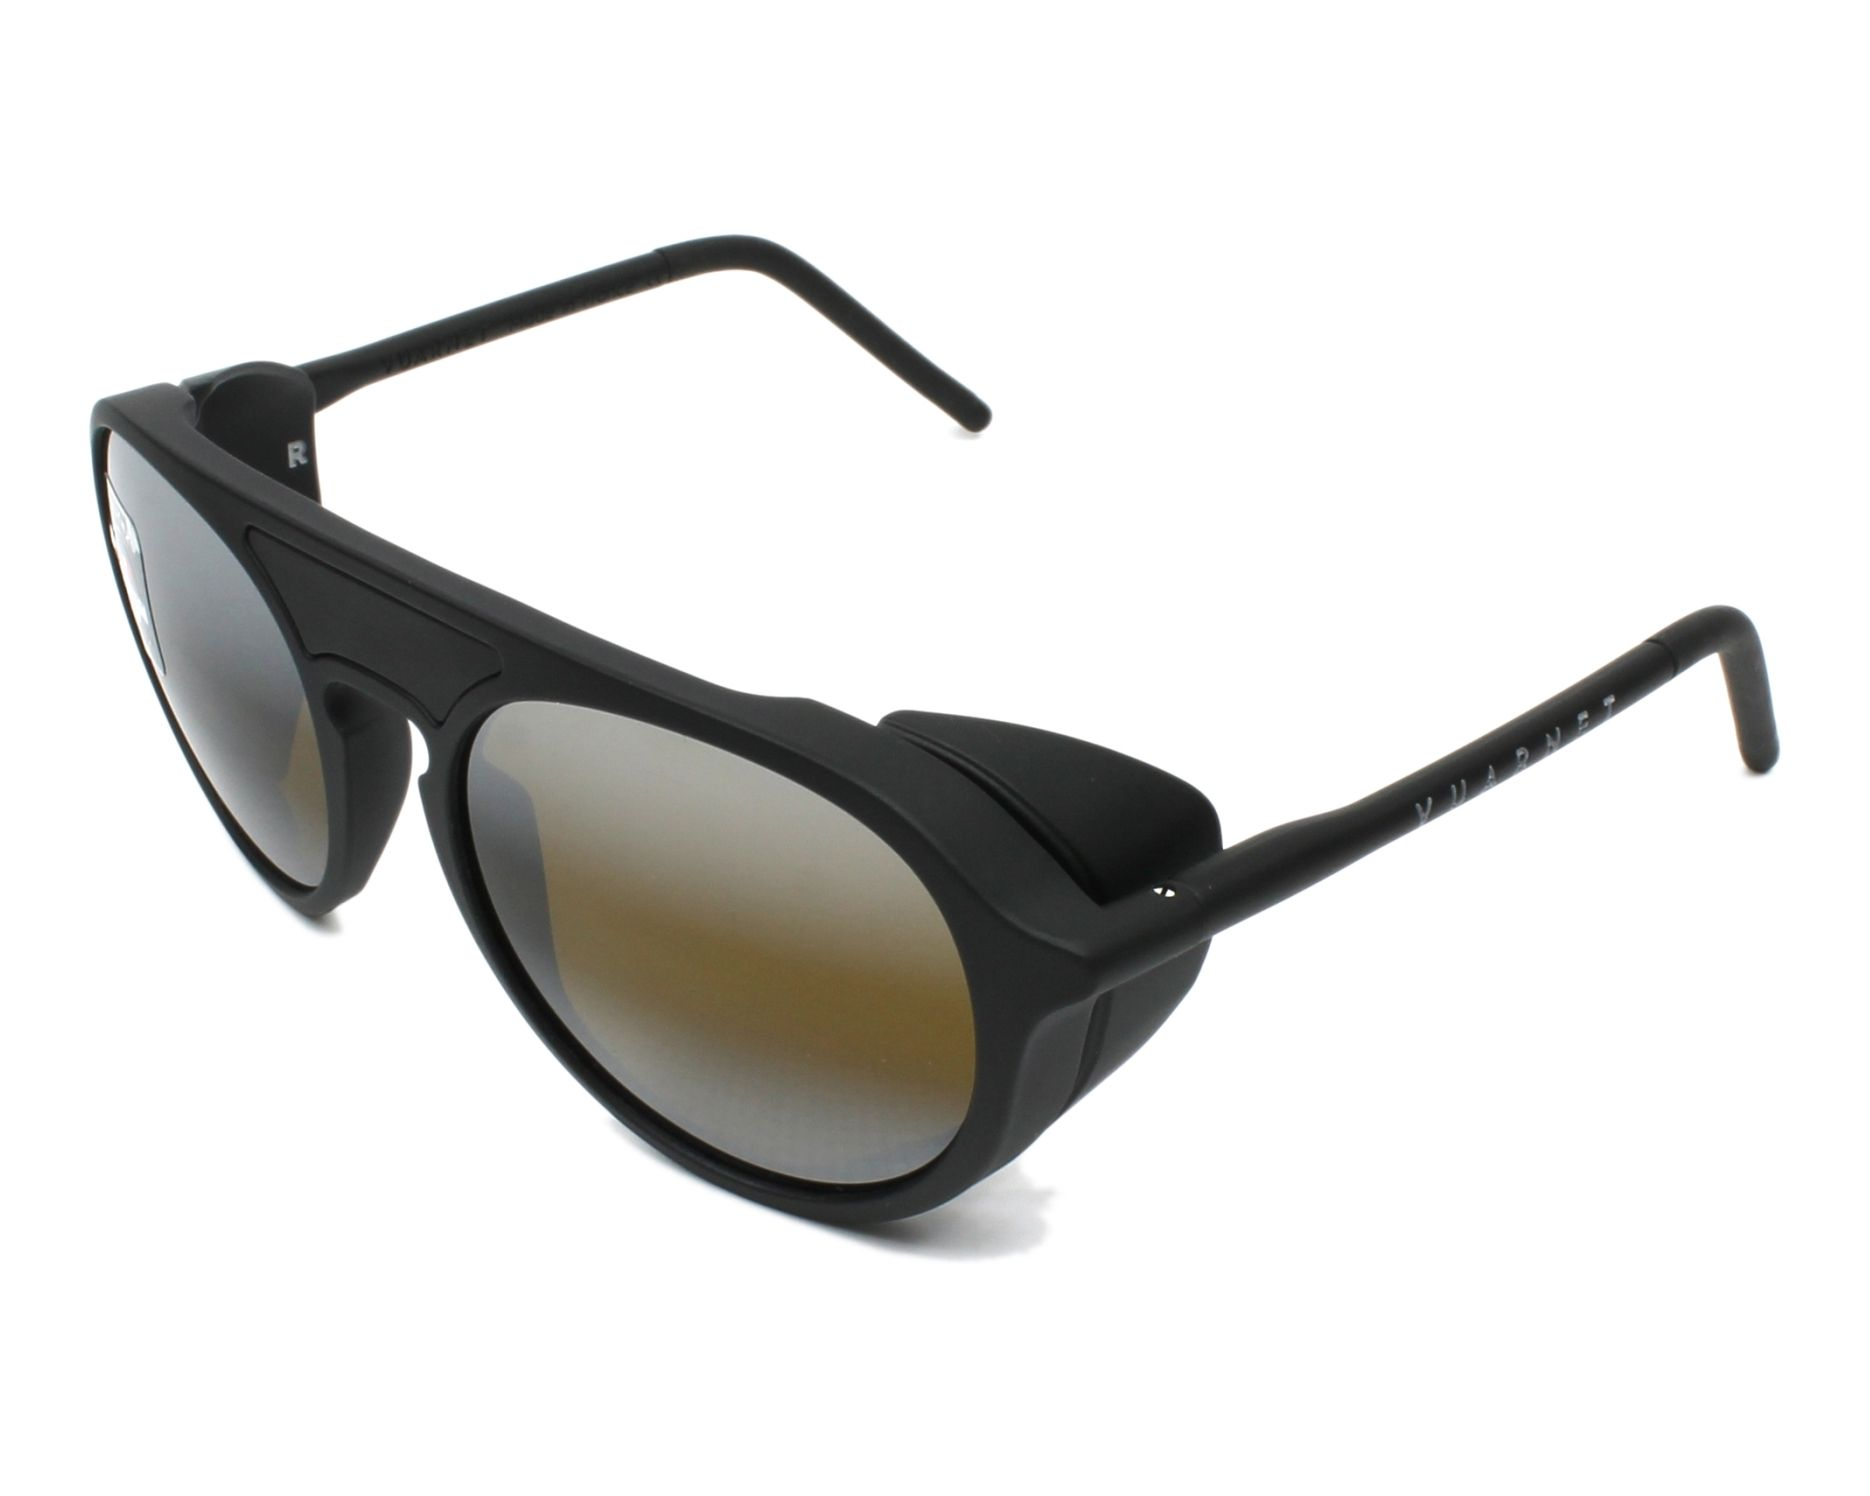 08c58b4a809 Vuarnet - Buy Vuarnet sunglasses online at low prices